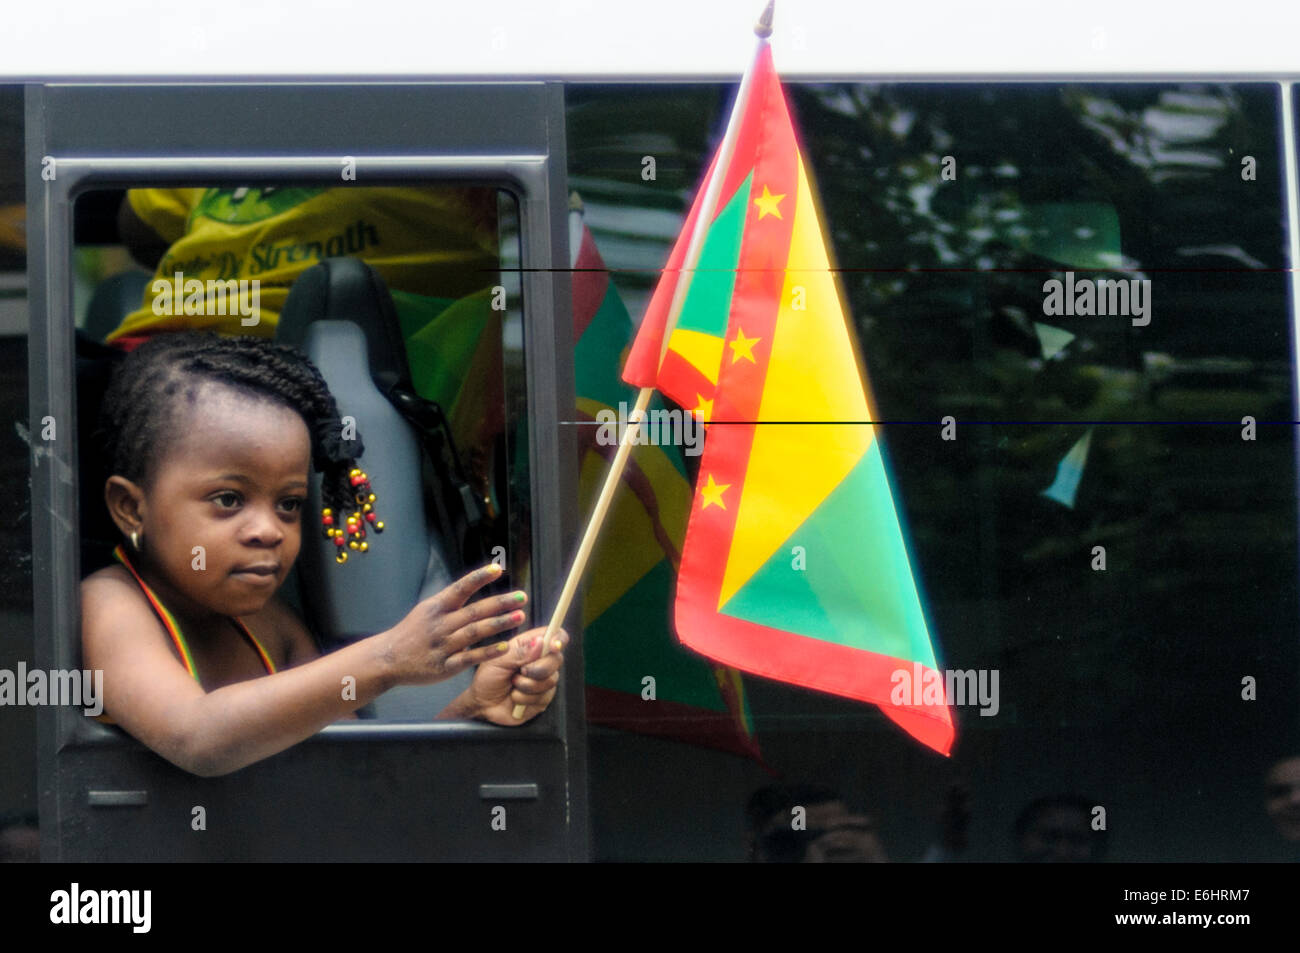 Notting Hill Carnival 2014, Children's day on Sunday - Stock Image